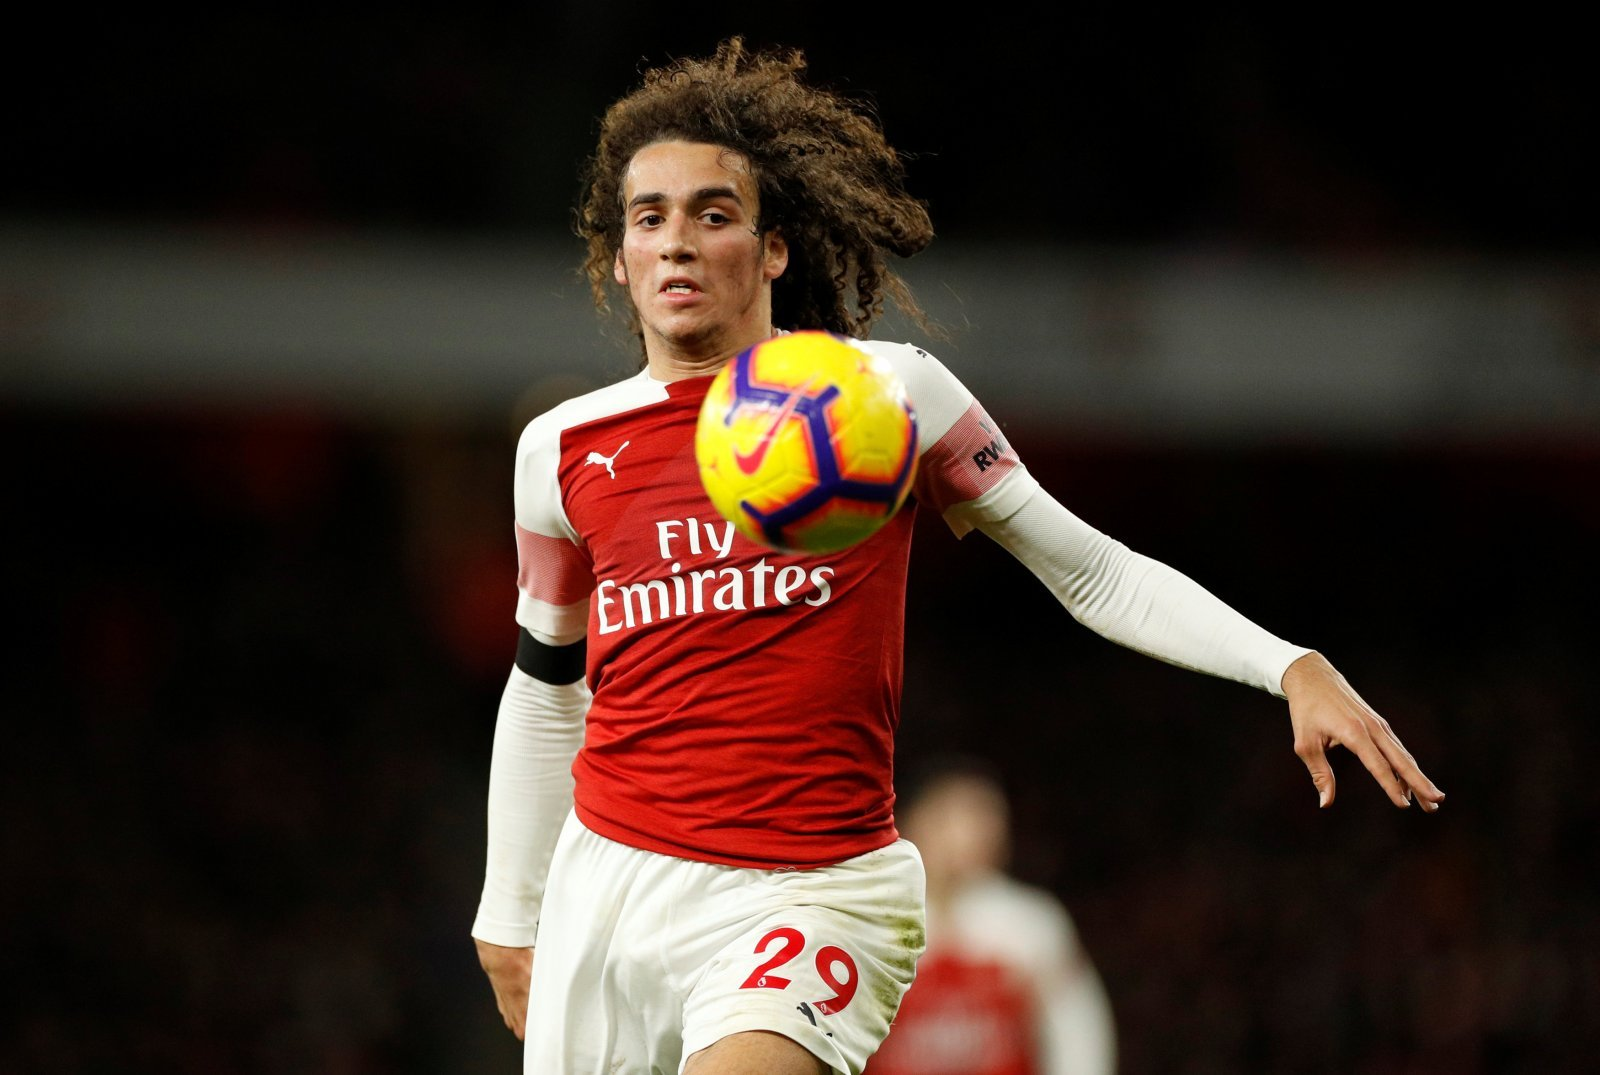 Transfer report reveals Arsenal beat Tottenham to Matteo Guendouzi's signature